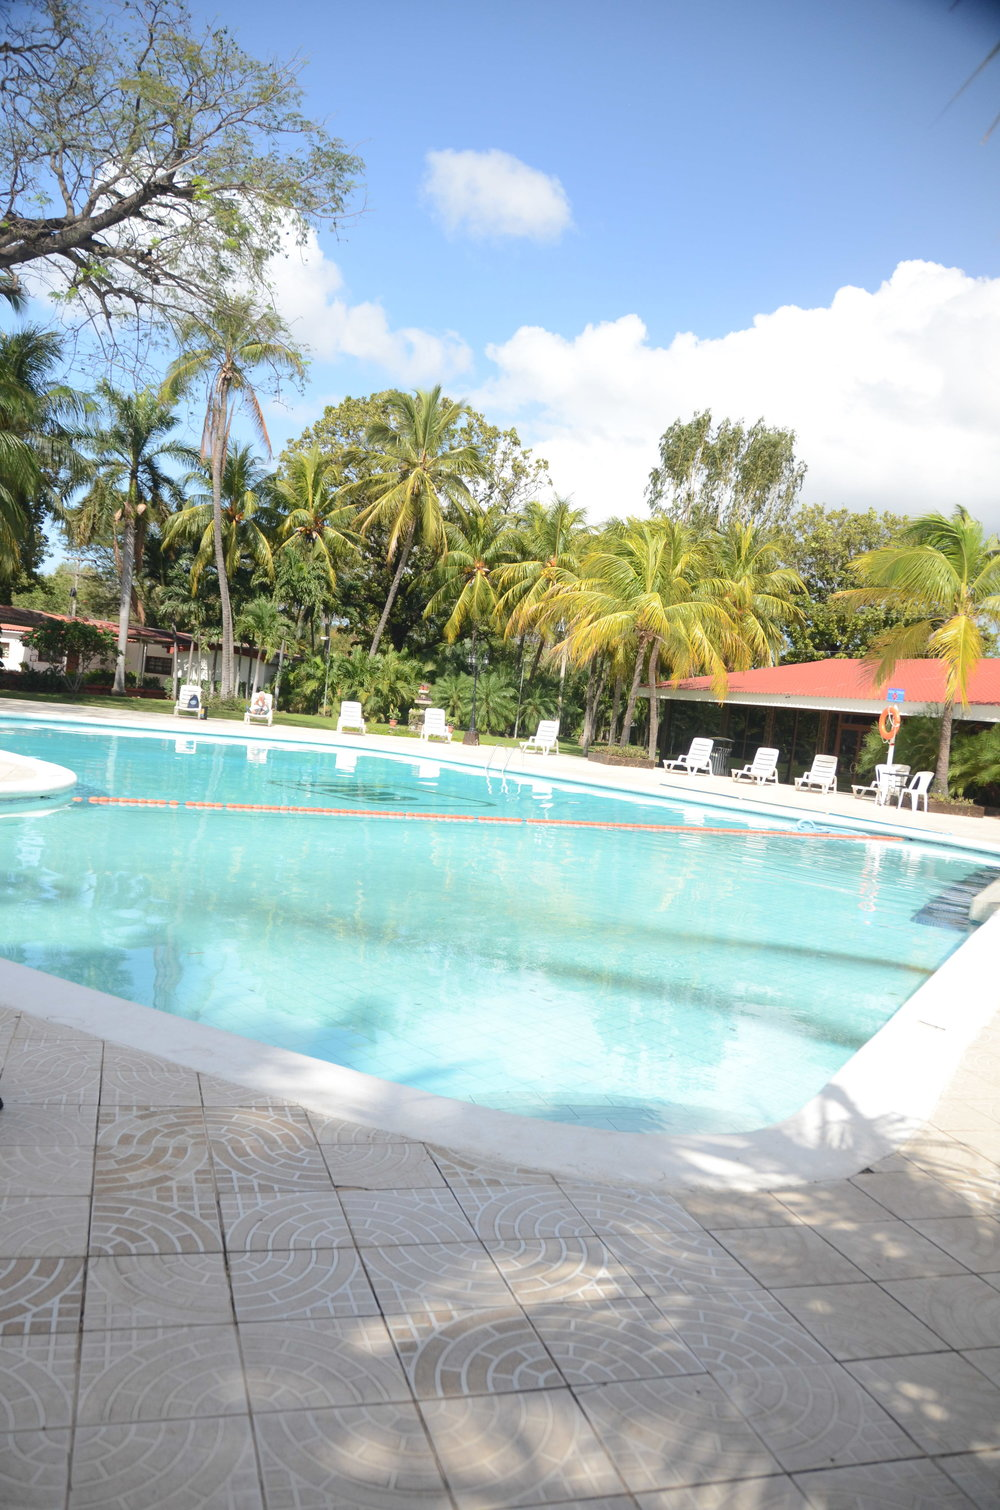 There are two pools in the hotel. This one is just so beautiful. I swam a little today, it was refreshing!